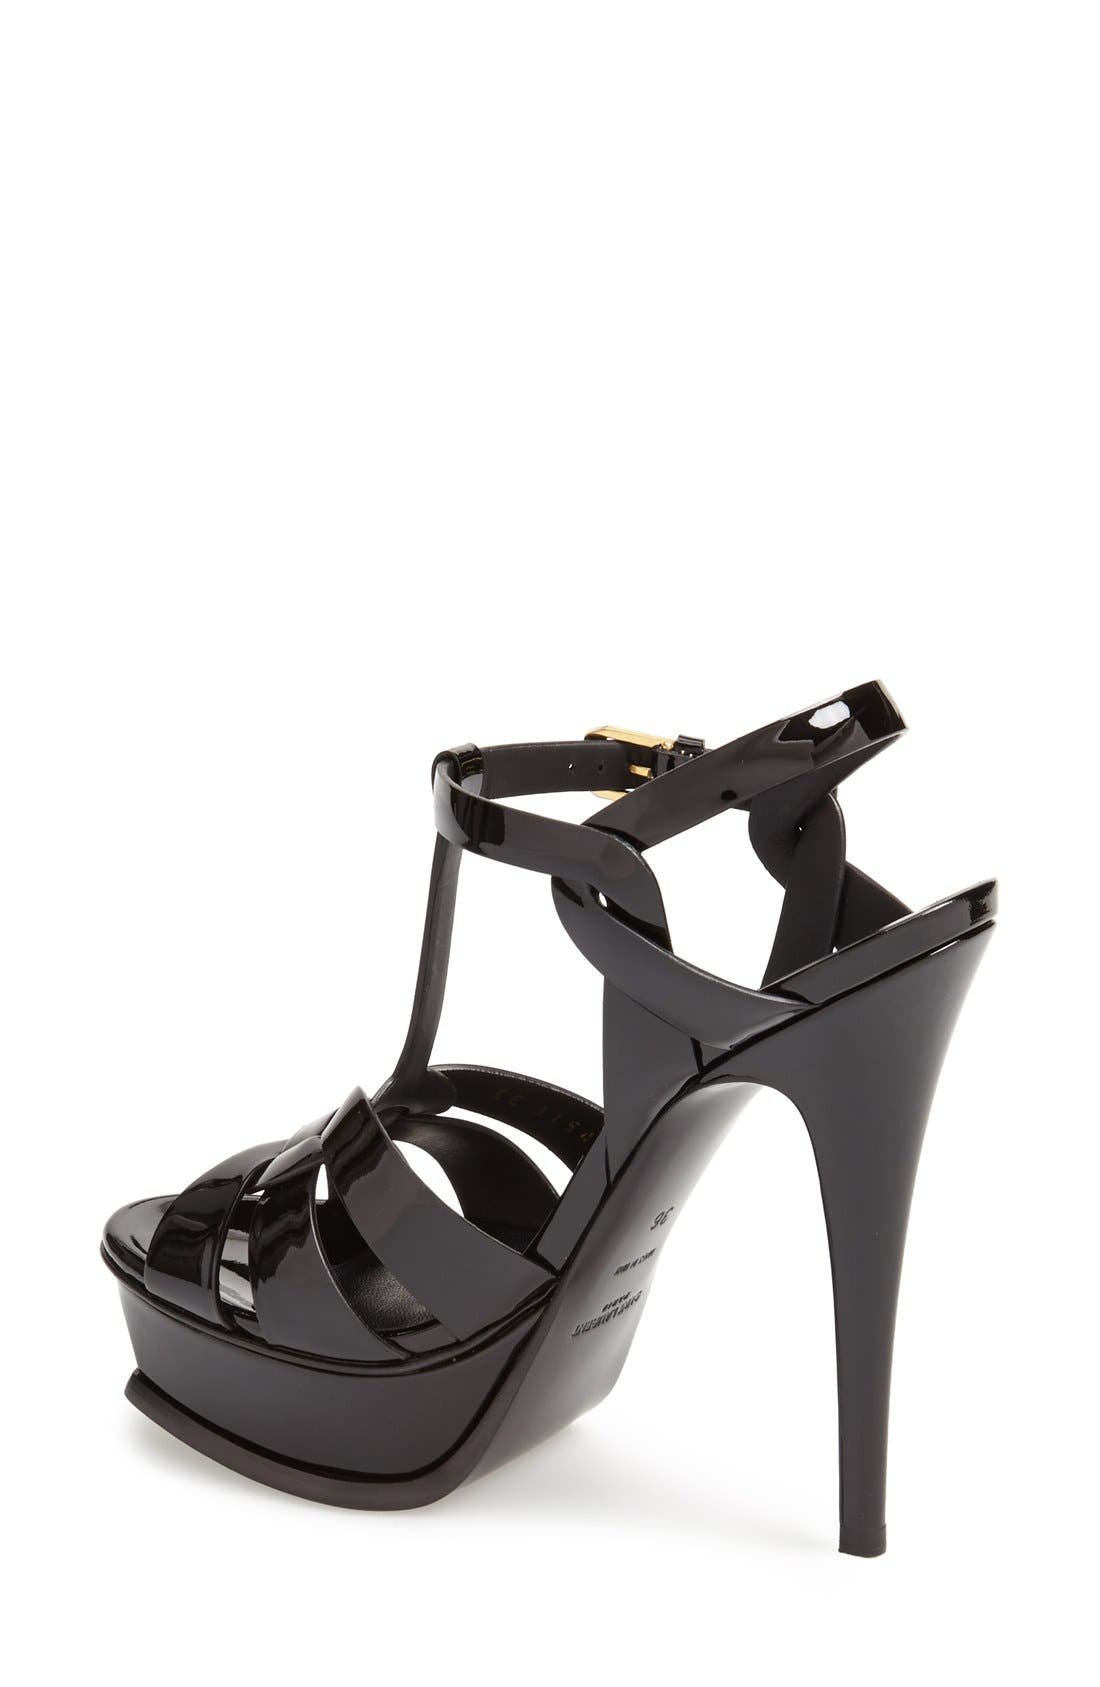 SAINT LAURENT, Tribute T-Strap Platform Sandal, Alternate thumbnail 2, color, BLACK PATENT